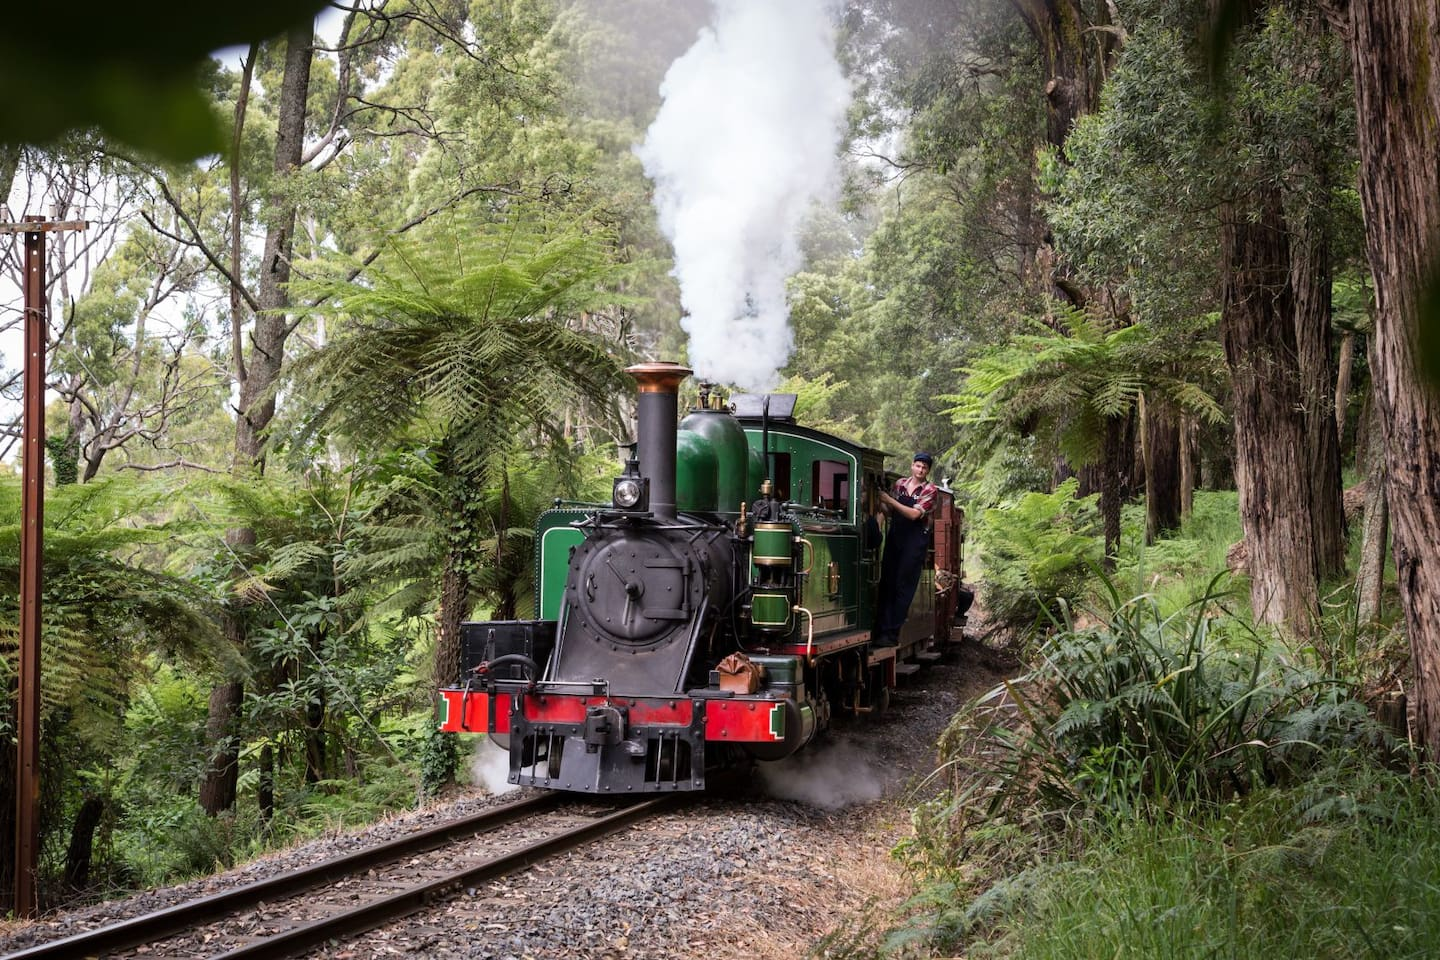 30 minutes by car: The Puffing Billy Railway Belgrave takes you on a  journey Dandenong Ranges.